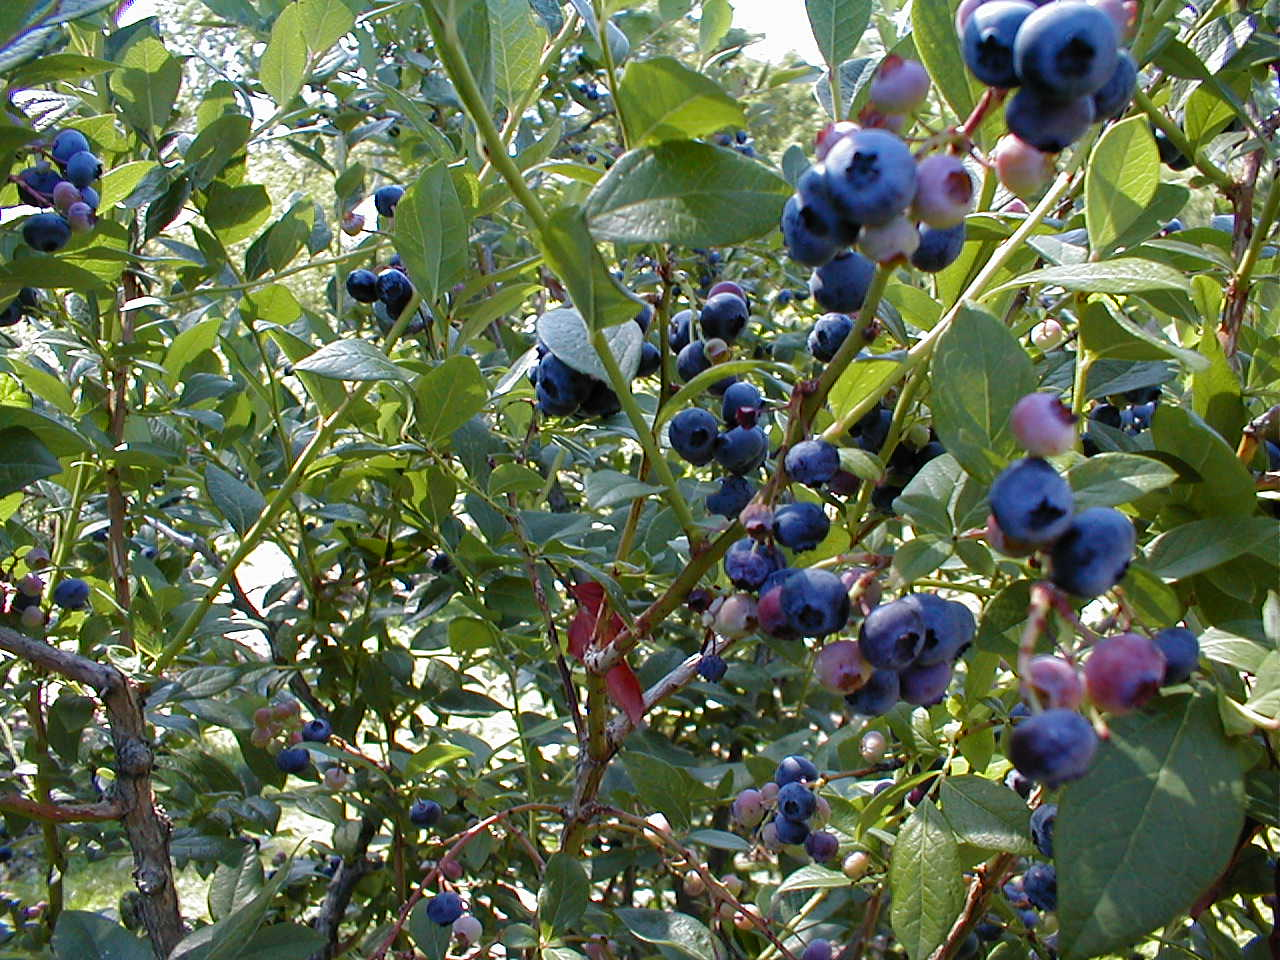 [A blueberry bush]